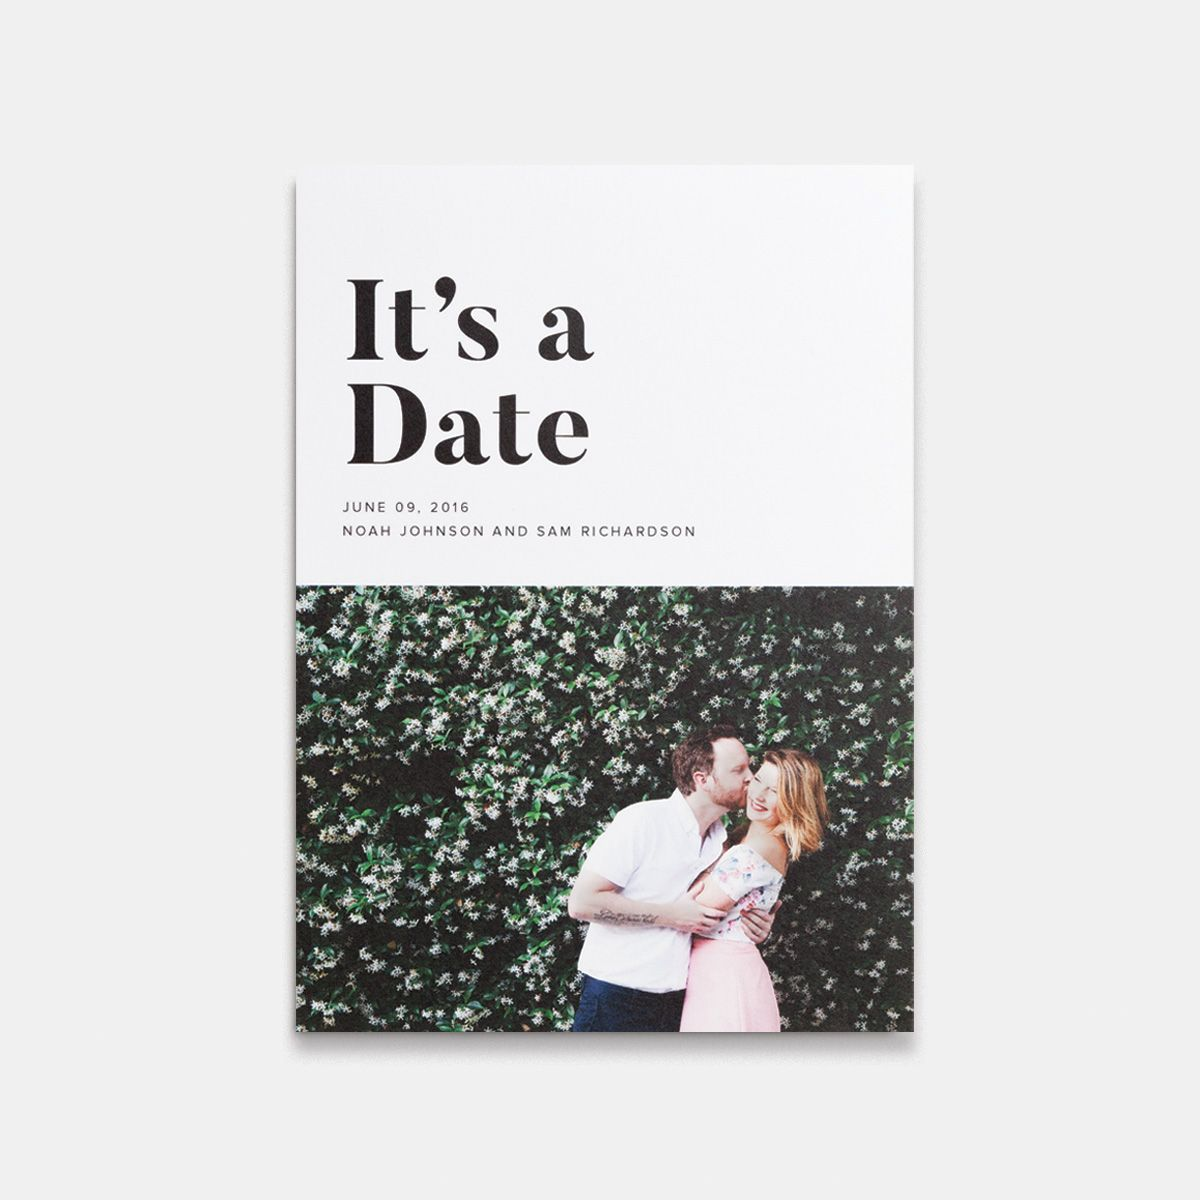 Wedding Save The Dates.It S A Date Photo Card